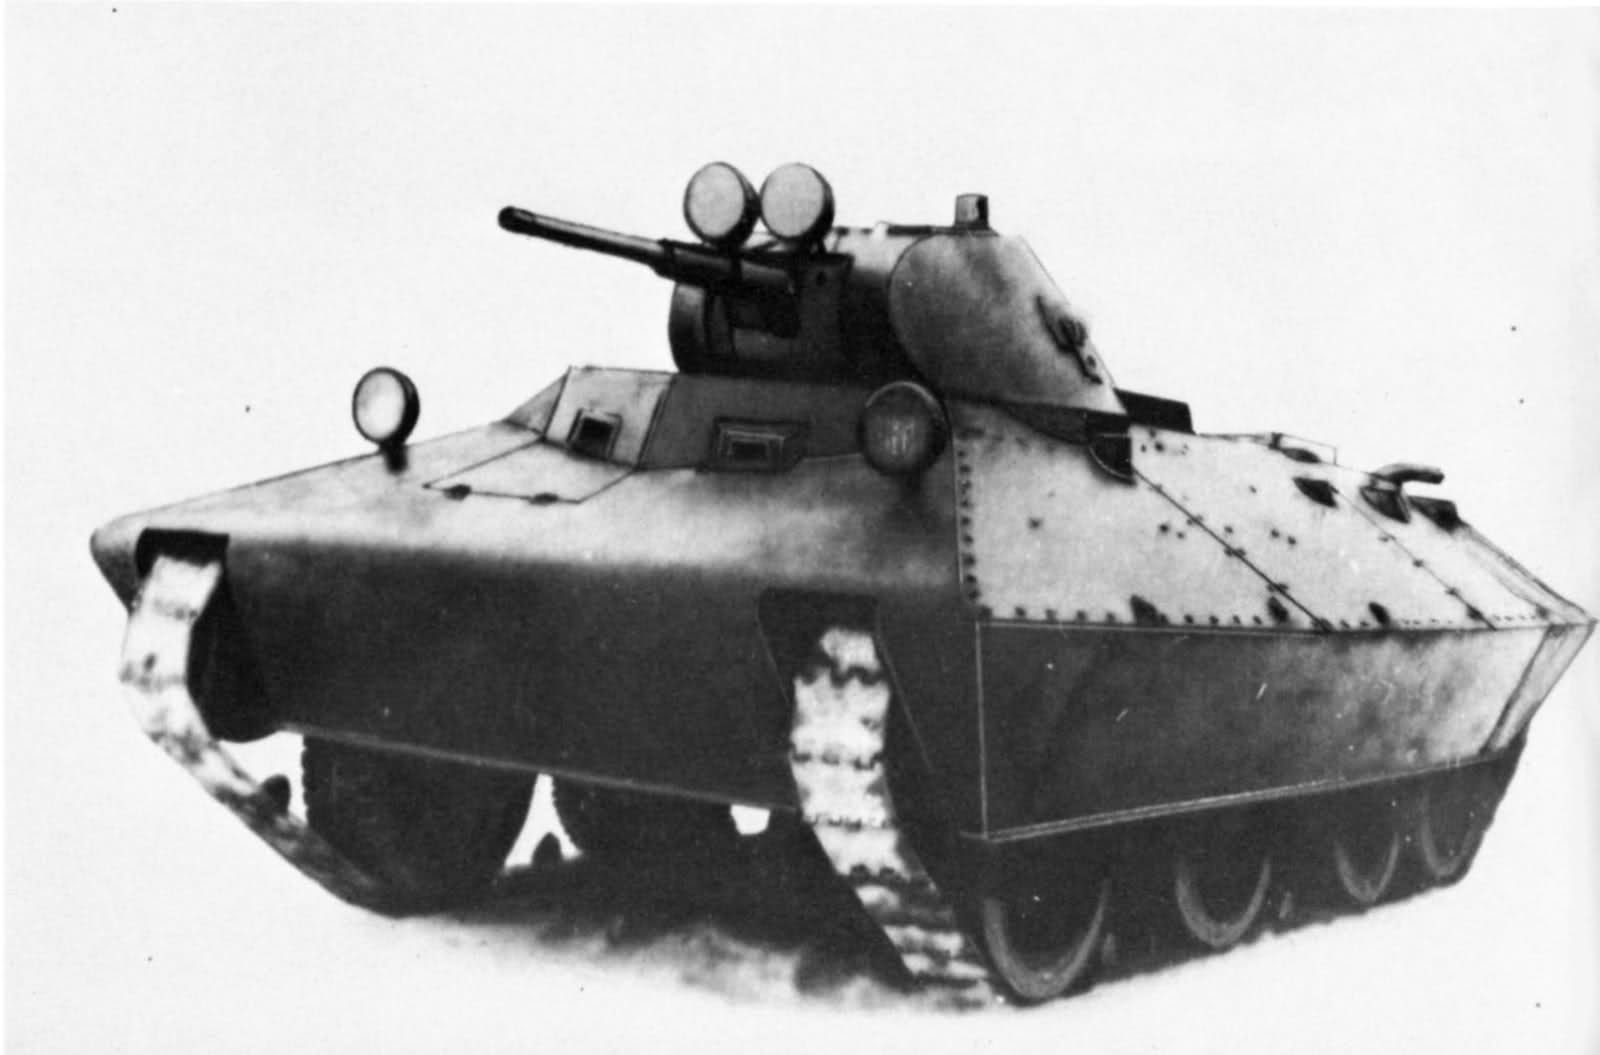 T110`s Armor - Heavy Tanks - World of Tanks official forum - Page 2774